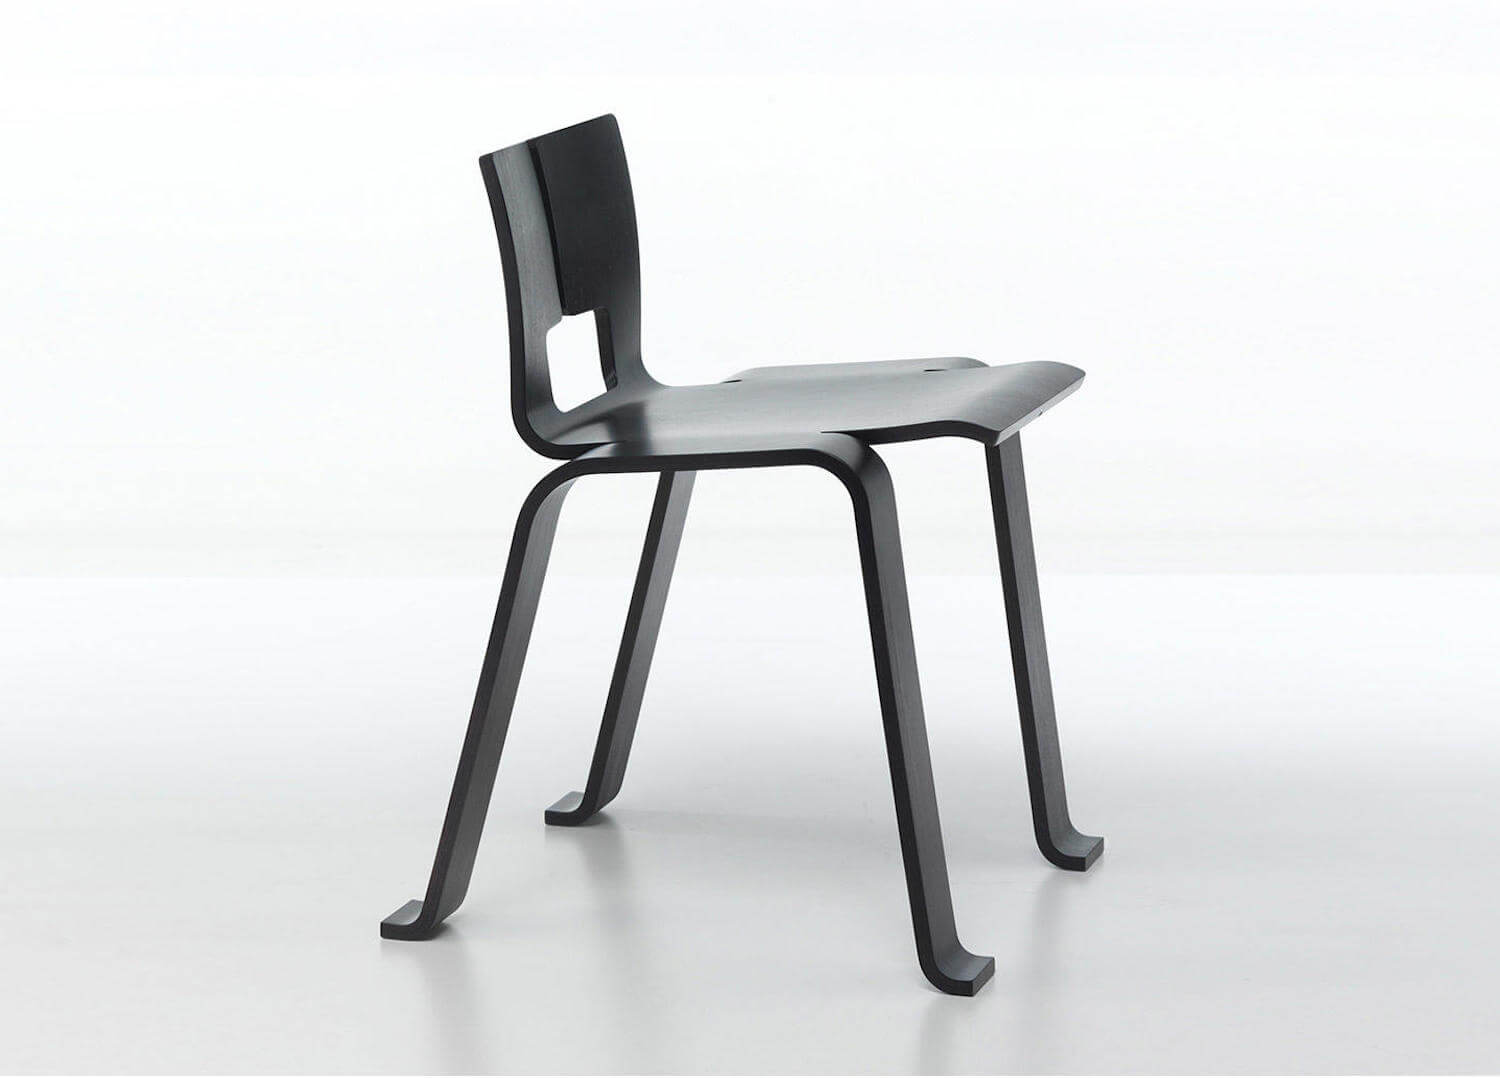 est living design directory ombra tokyo chair charlotte perriand cassina space furniture 3